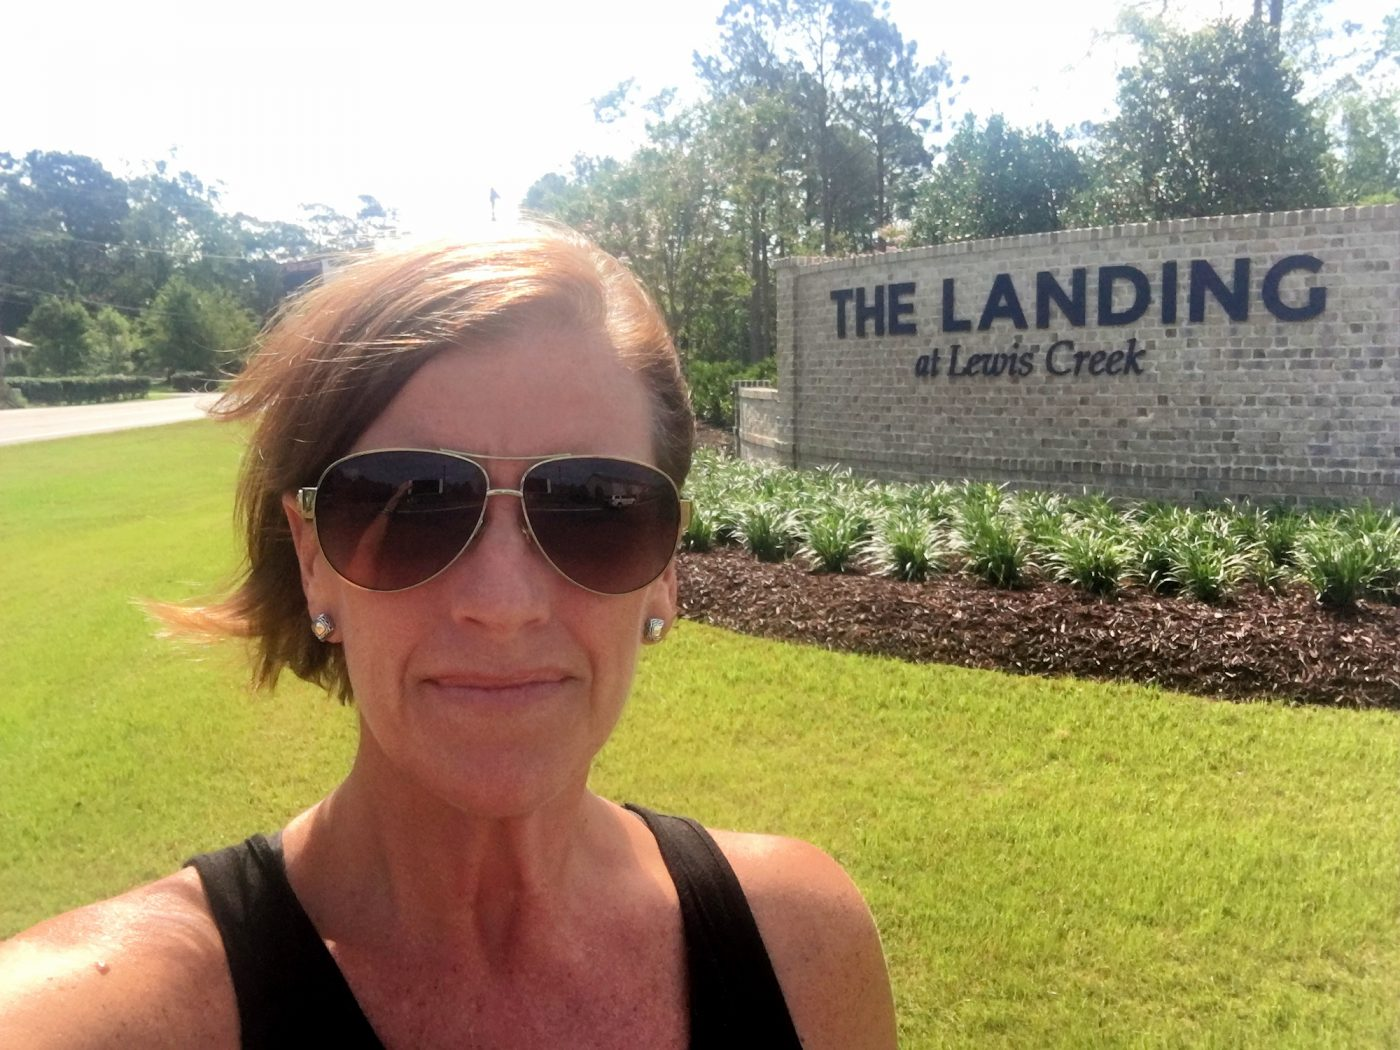 The Landing at Lewis Creek Estates - Melanie Cameron